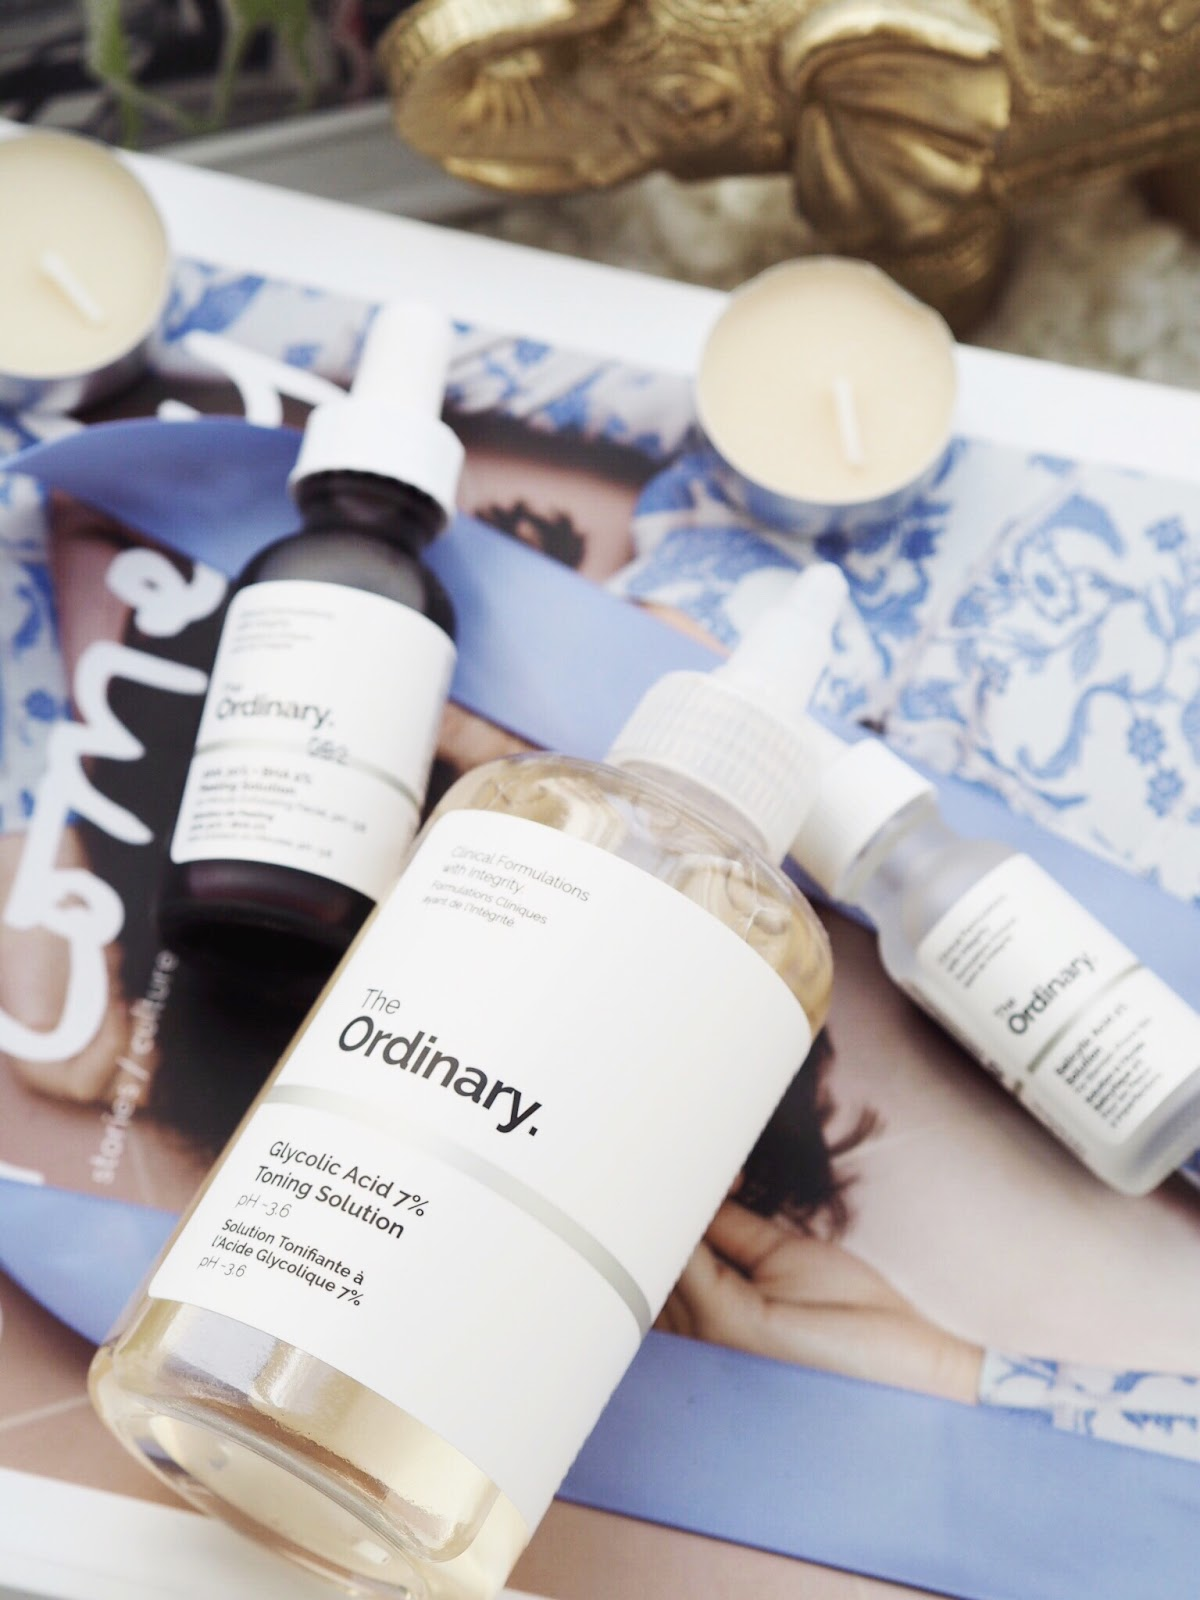 The not so ordinary skincare